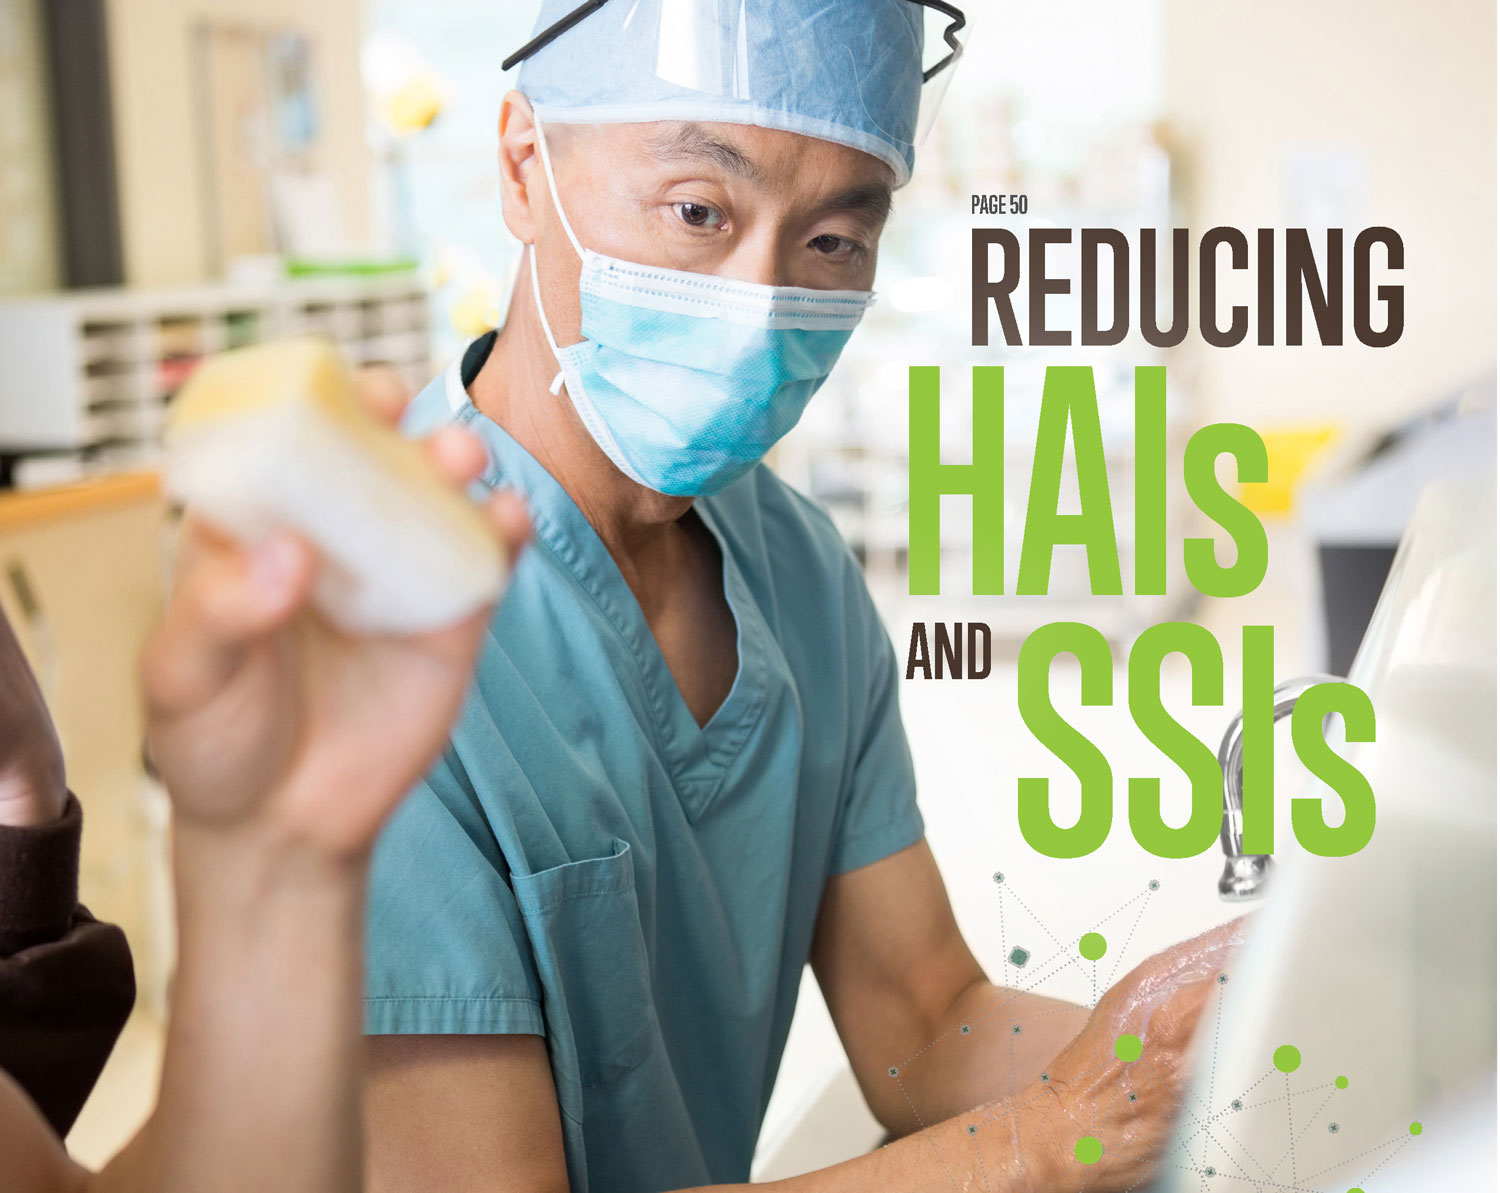 Reducing HAIs and SSIs